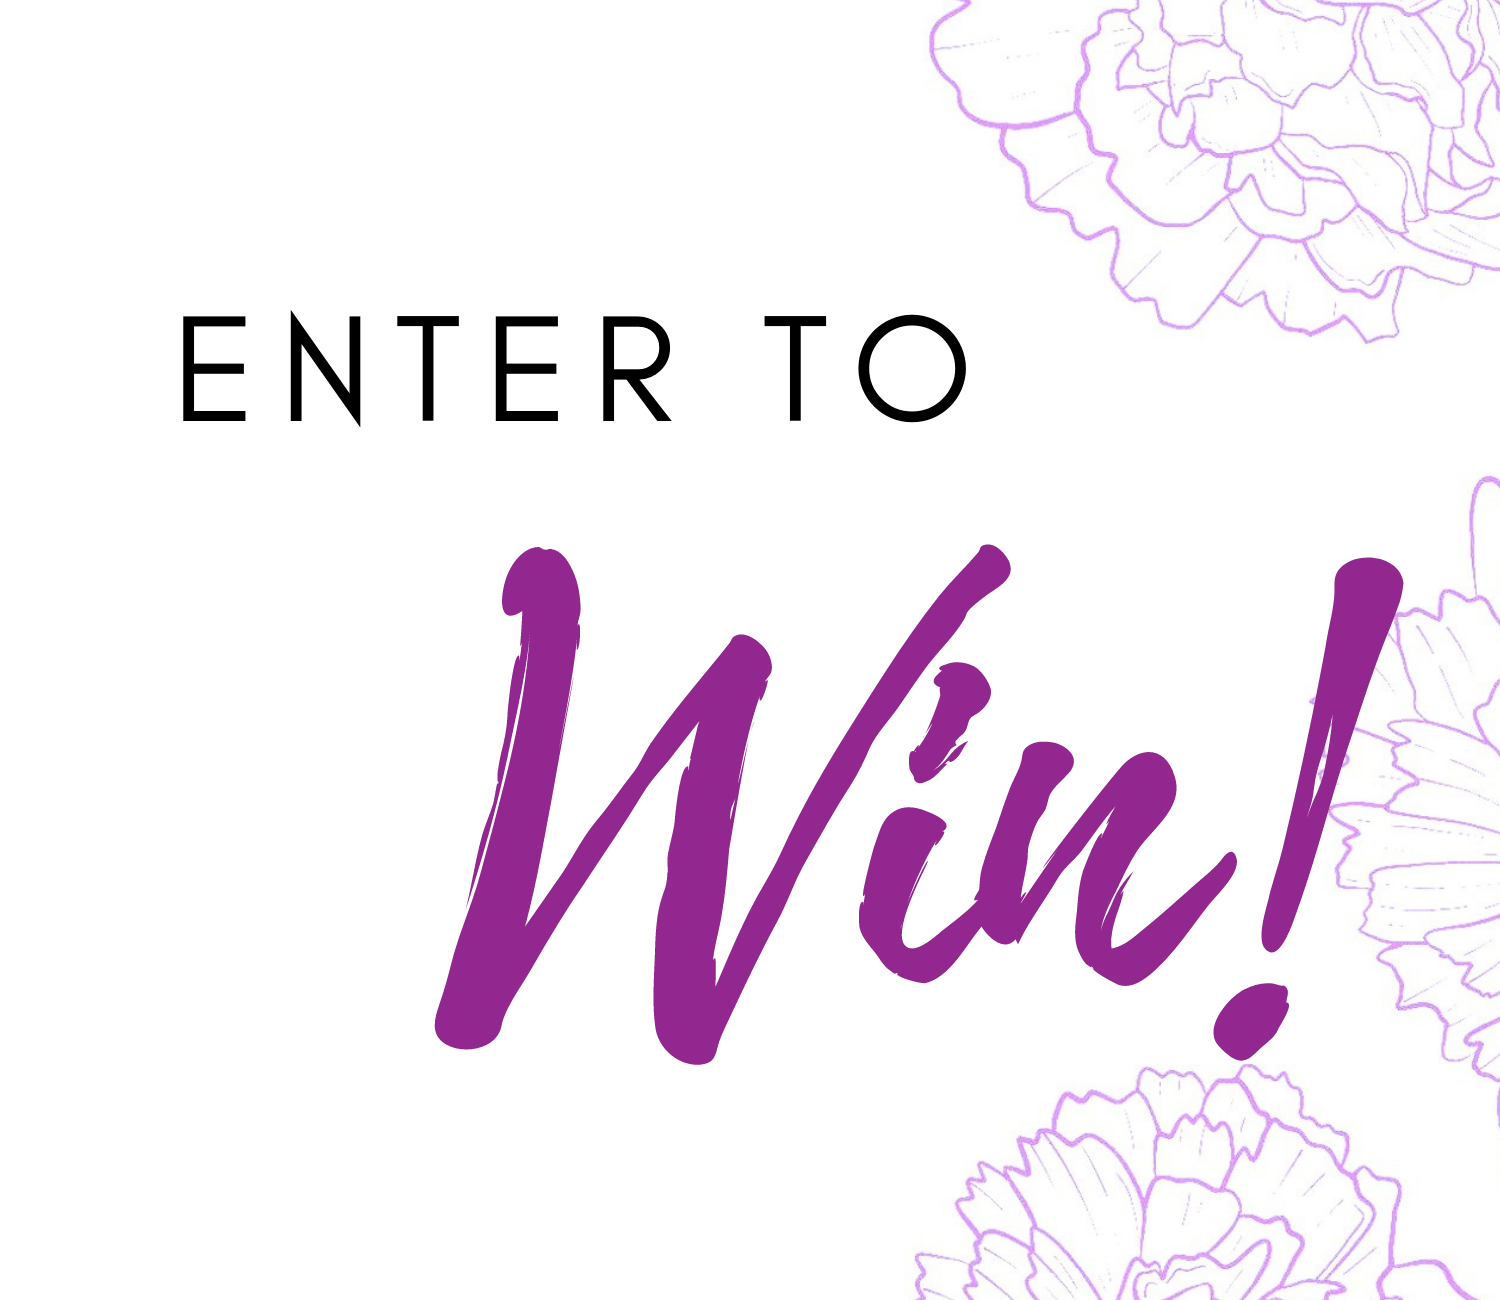 Enter to Win pop up on I Said Yes